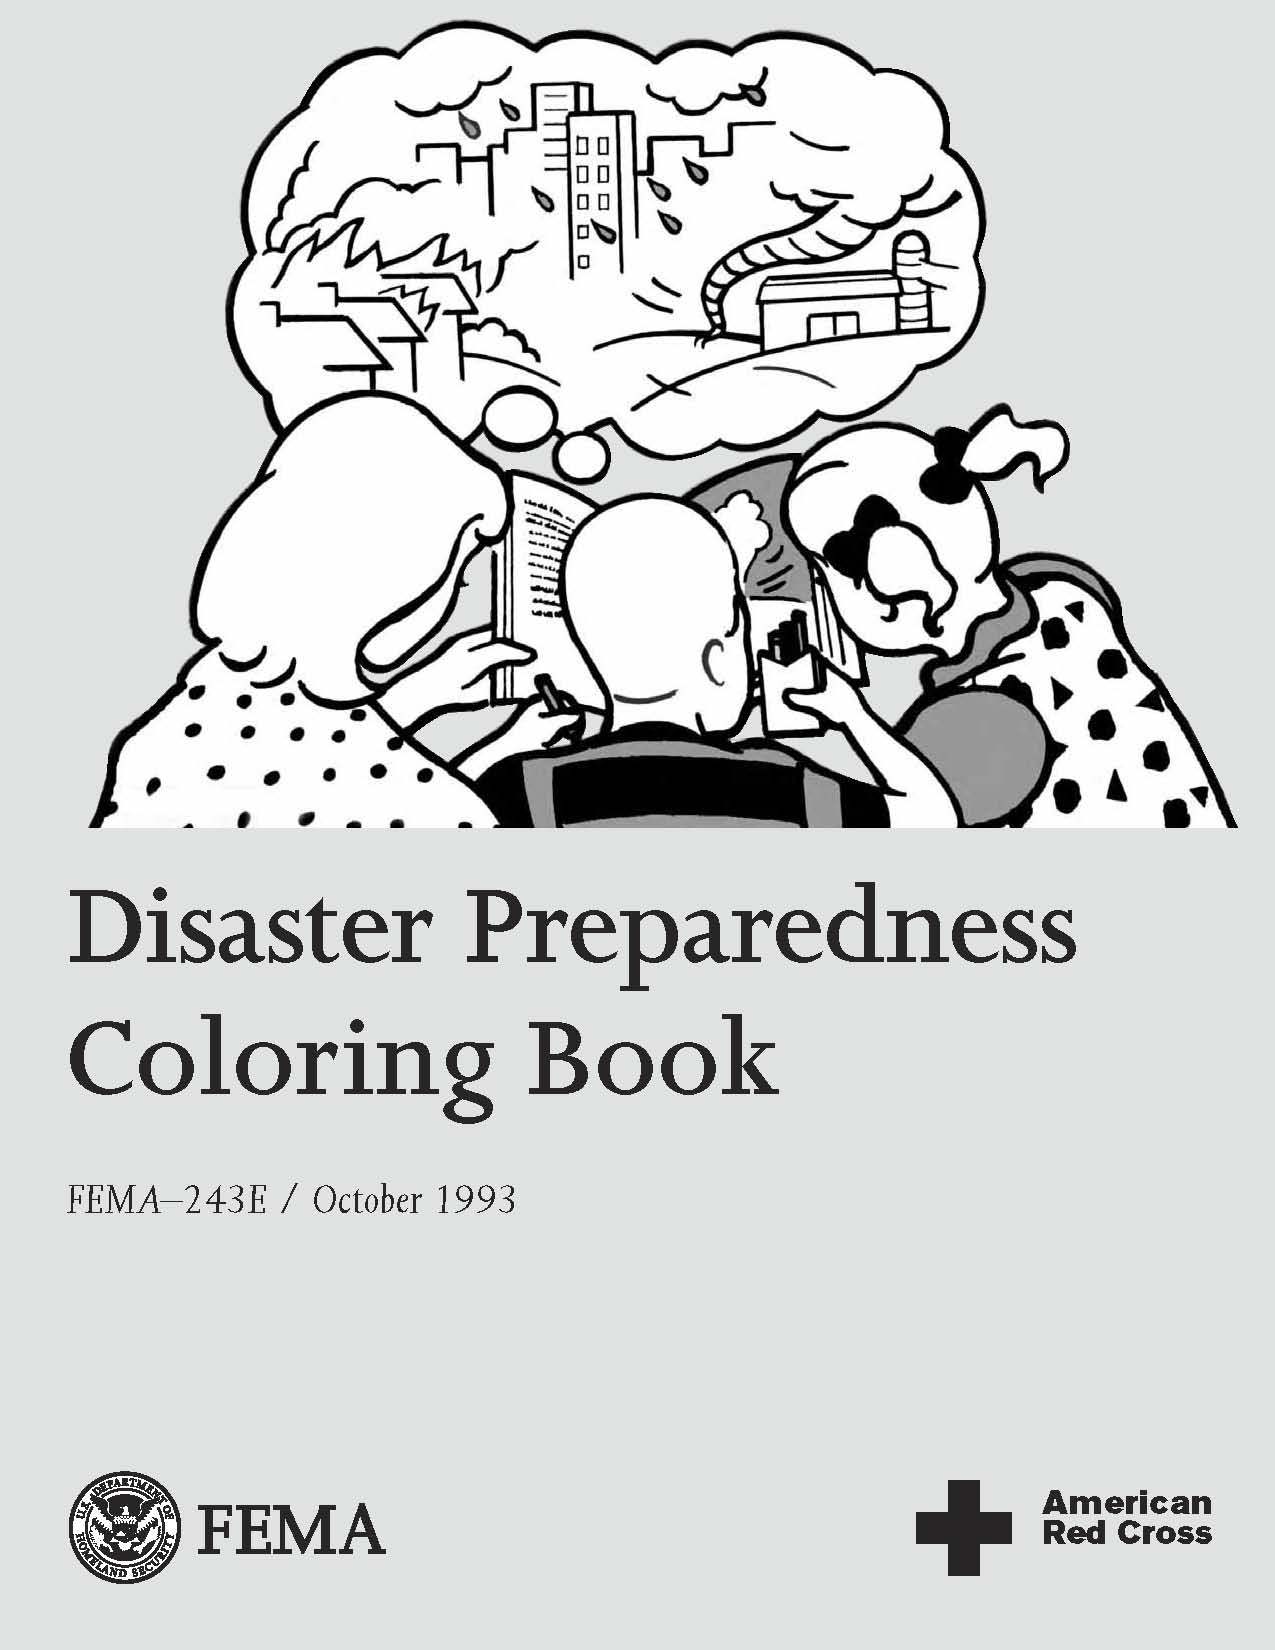 Environmental coloring activities - Ready Kids Activity Book Pdf Disaster Preparedness Coloring Book Fema 243e Pdf 926 Kb Txt 25 Kb Available In Spanish Pdf 612 Kb Txt 25 Kb